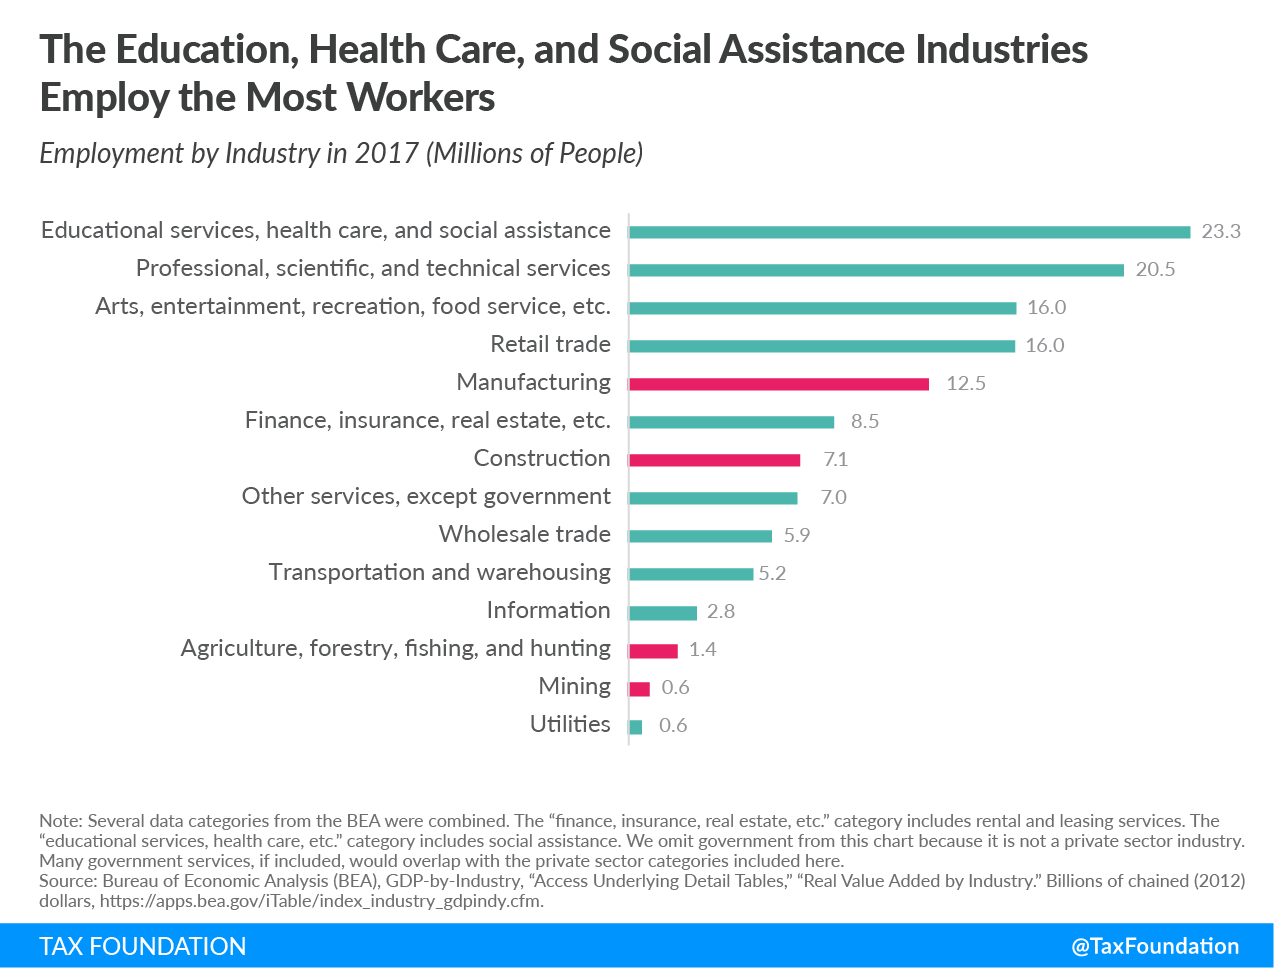 The education, healthcare, social assistance industries employ the most workers, educational services, arts, entertainment, recreation, food service, finance, insurance, real estate, transportation, wholesale trade, agriculture, forestry, fishing, hunting, mining, utilities